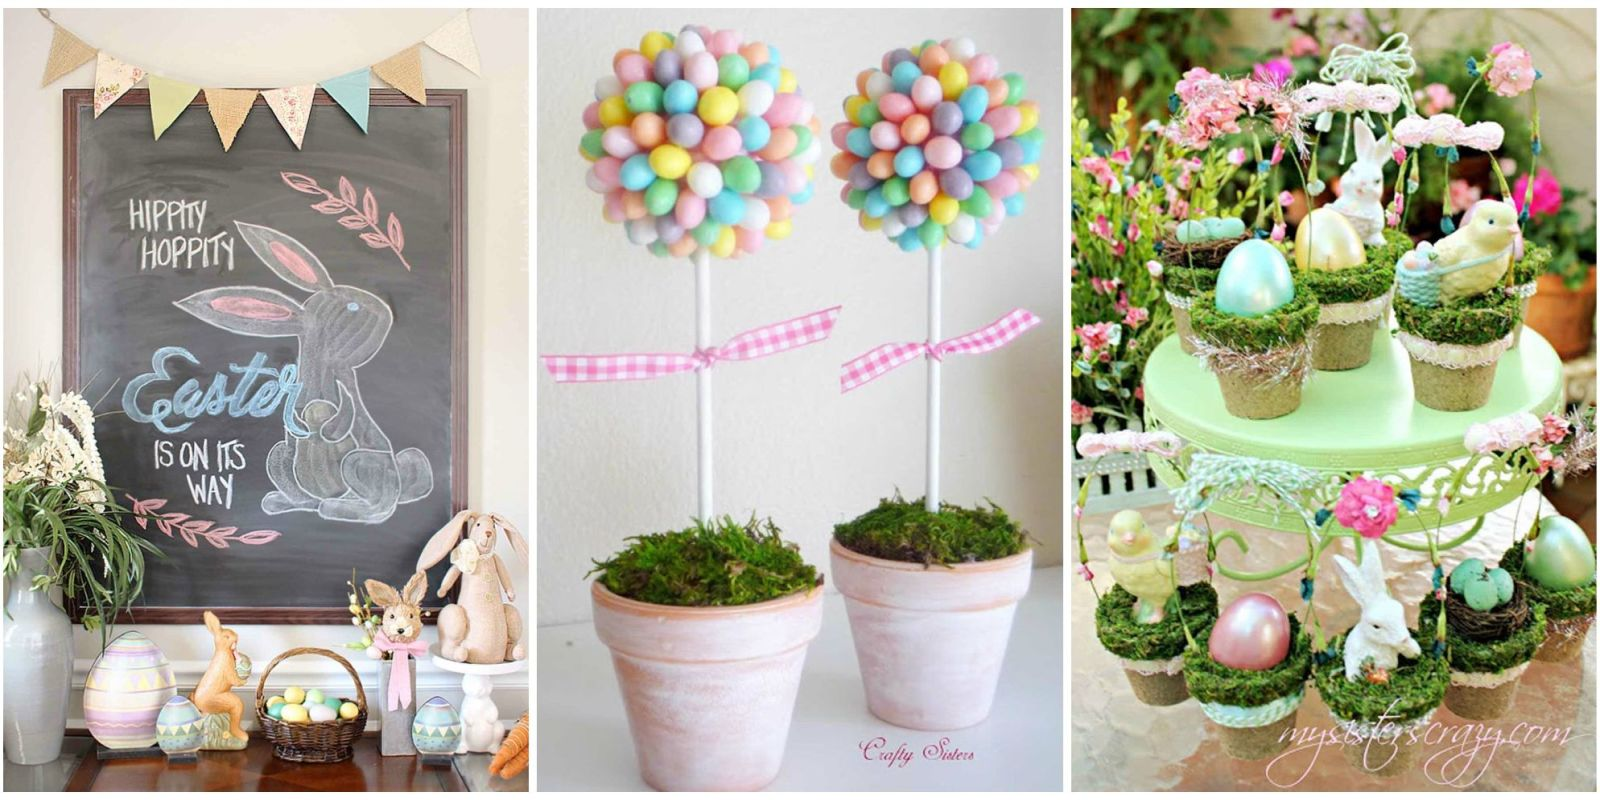 20 diy easter decorations to make homemade easter for Home easter decorations